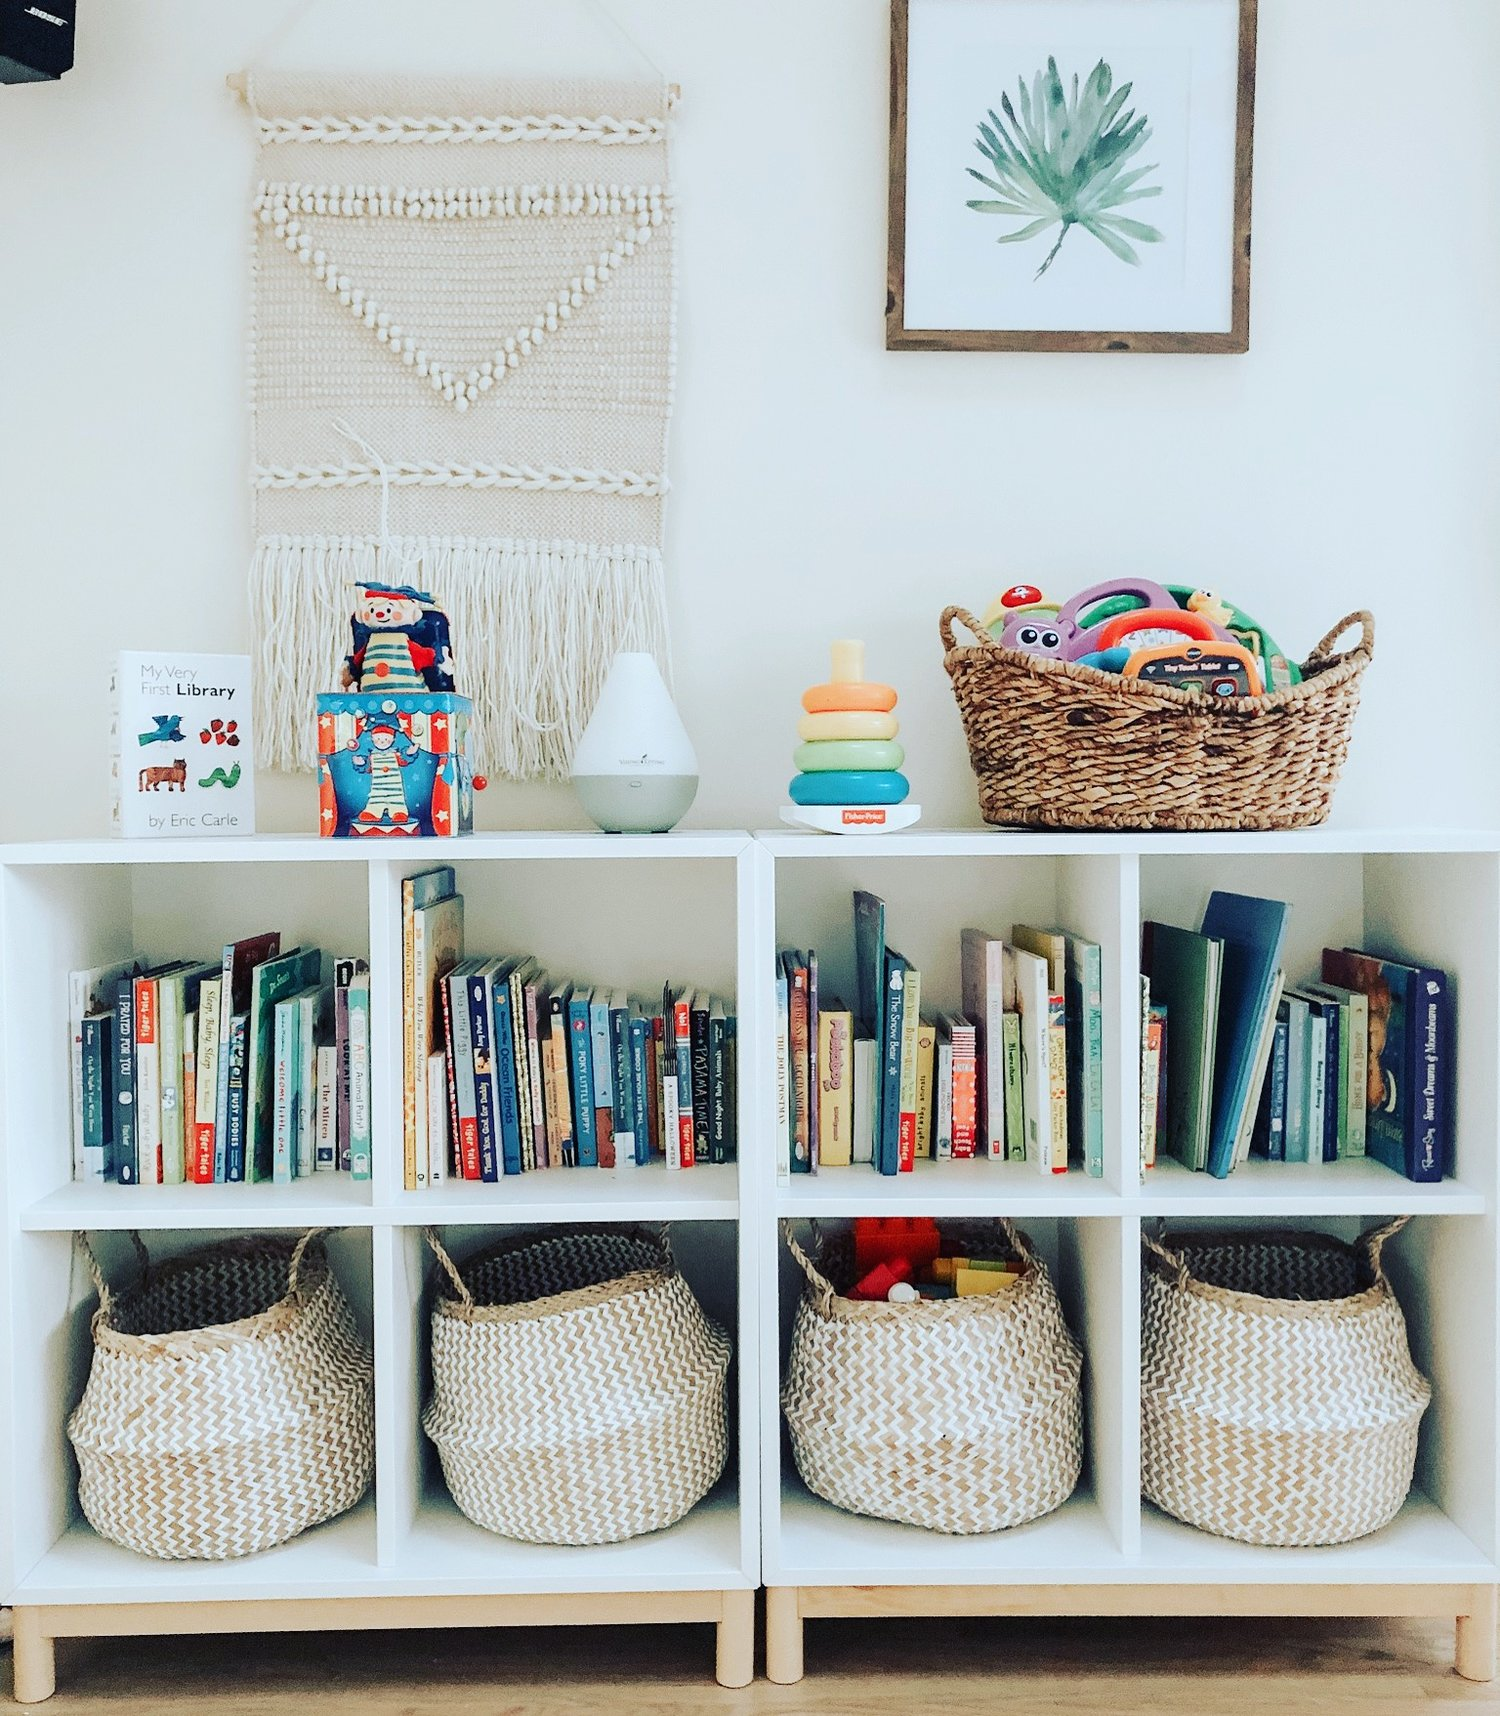 Shelving Unit | Baskets | Similar Baskets | Similar Art | Similar Art | Similar Tapestry and here | Similar Diffuser